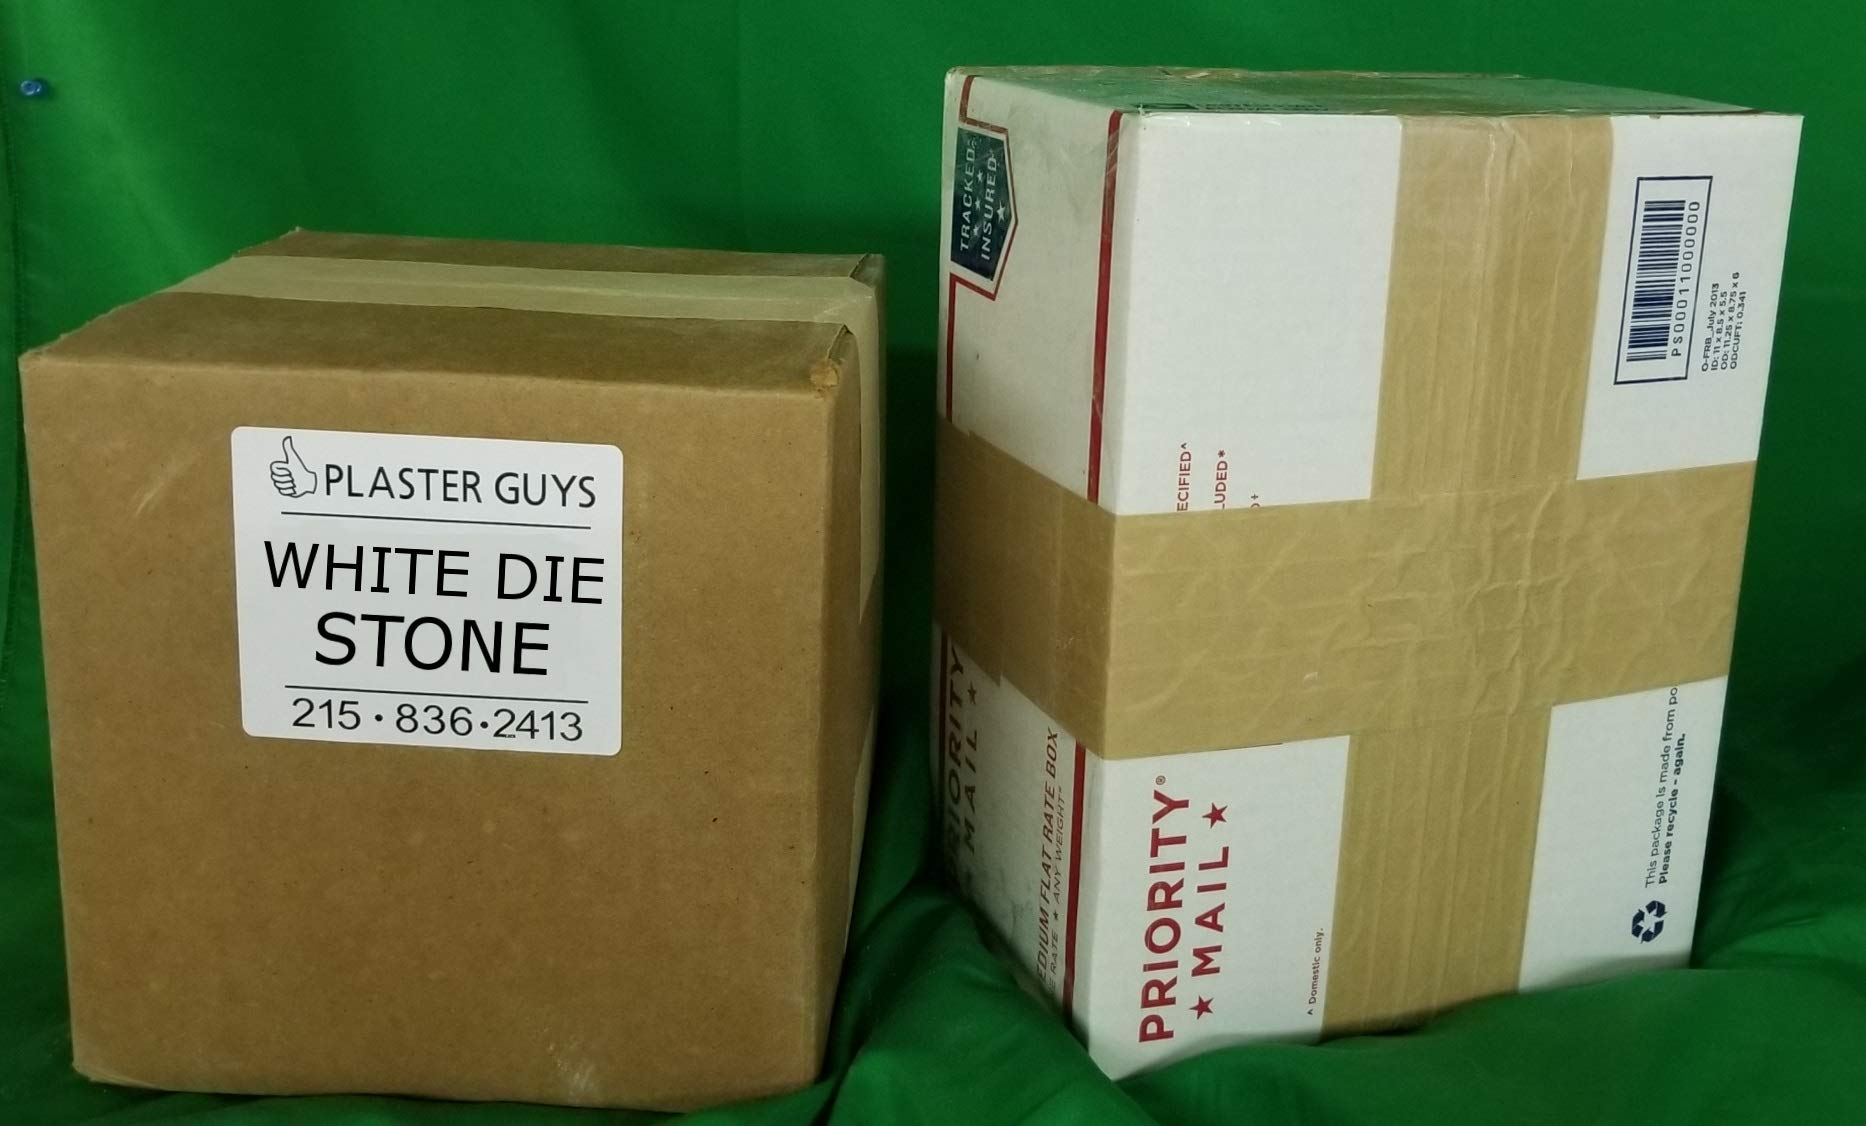 White Dental Die Stone 50 Lb Bag - Type 4 (IV) - Fast Shipping! Made in The USA! by Plaster Guys (Image #1)